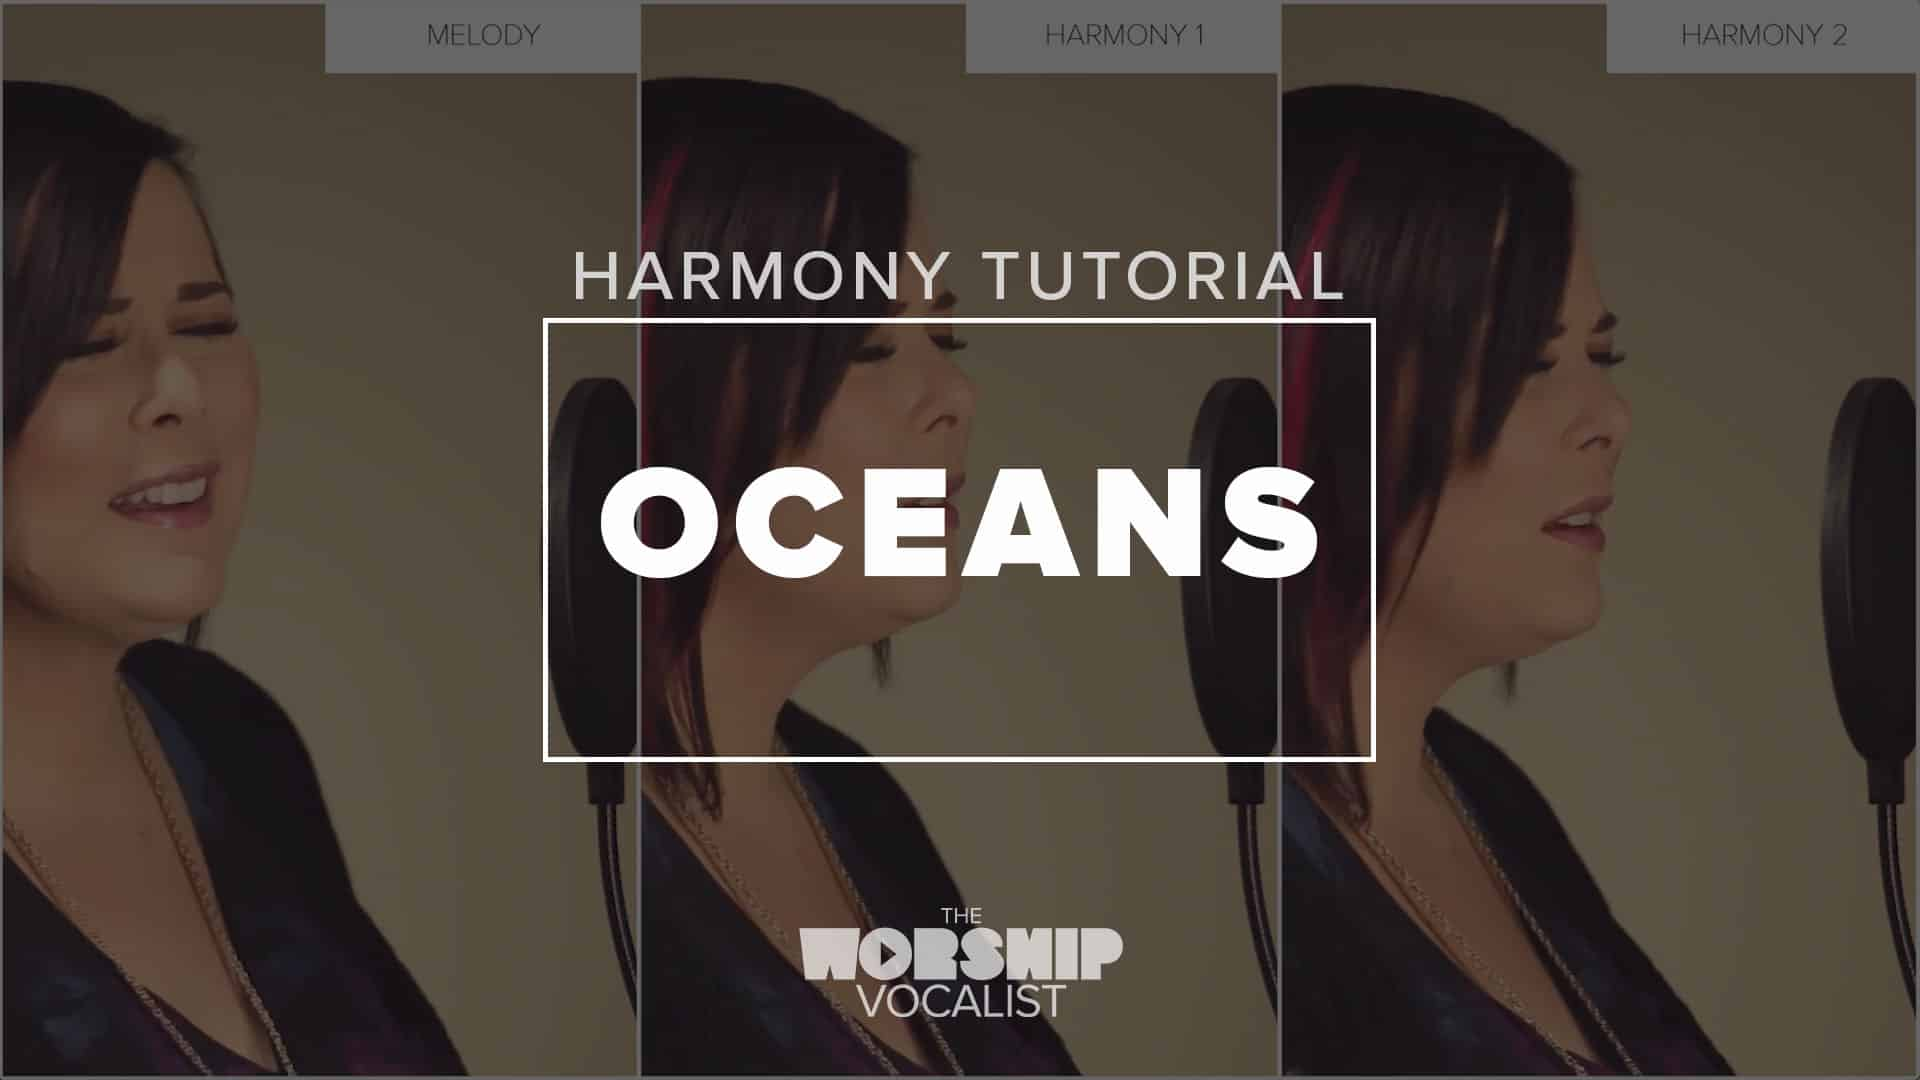 learn to sing harmony for Oceans like Taya Smith and Hillsong in this video training